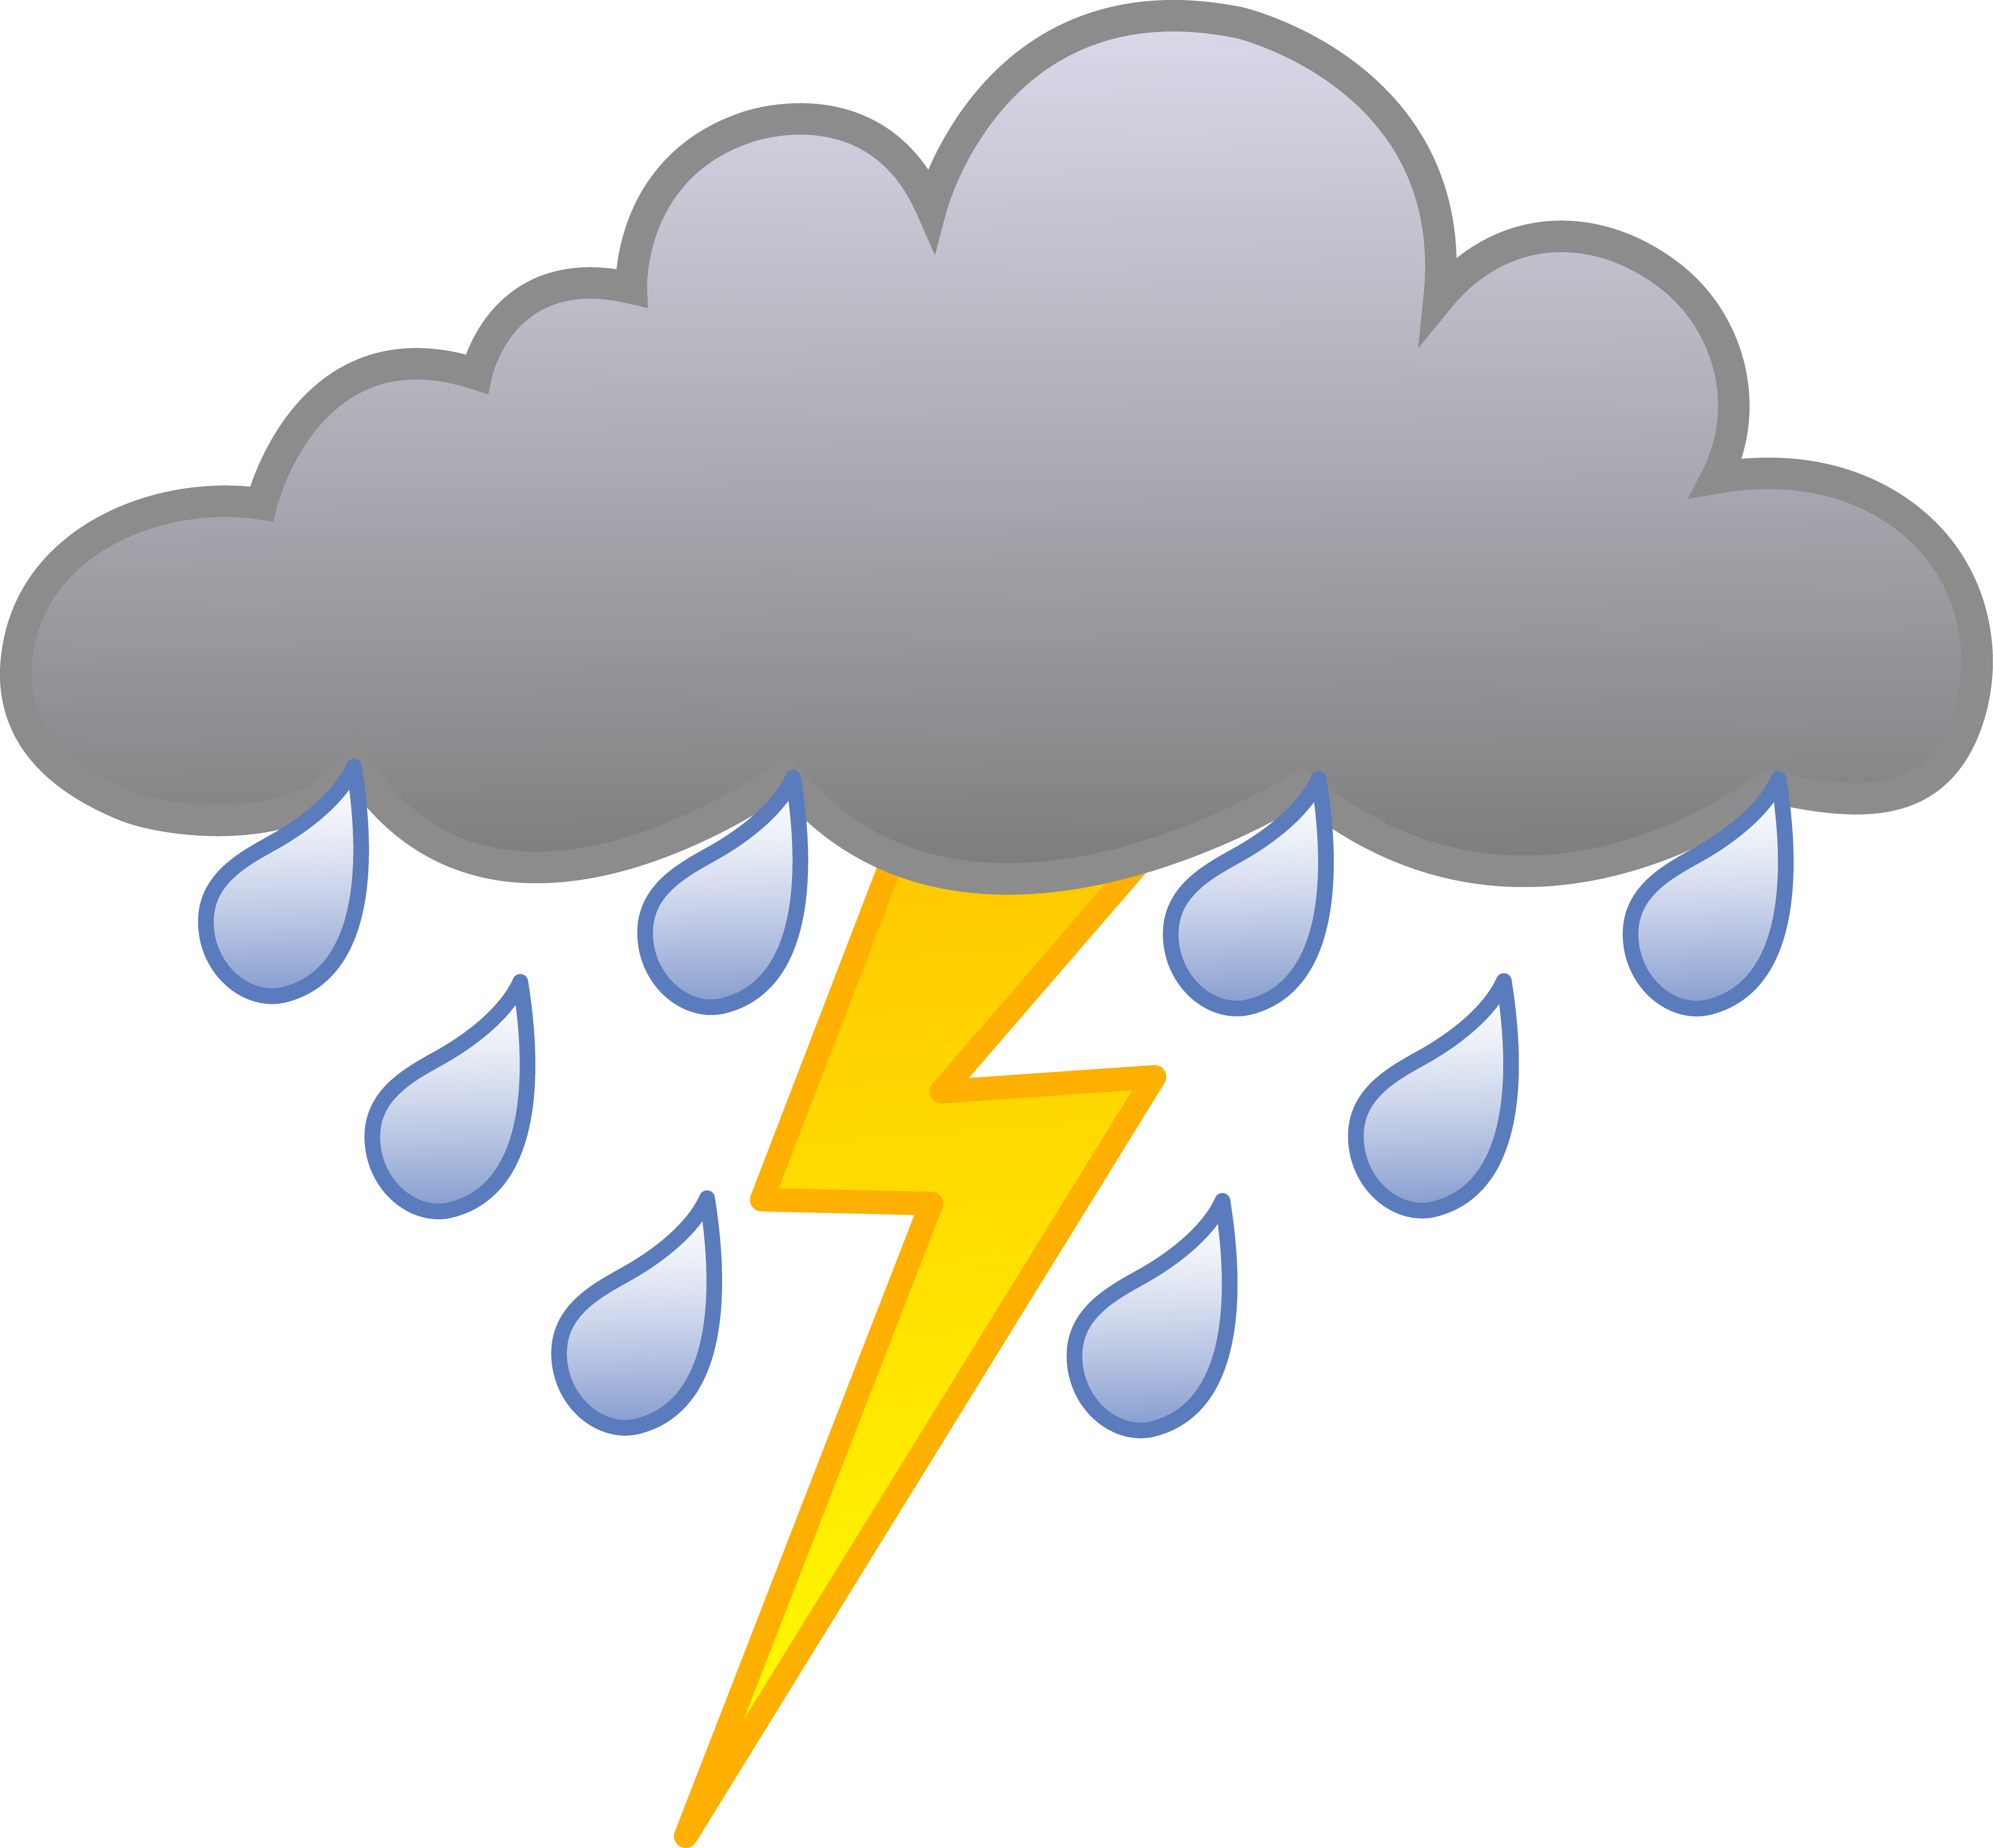 Meteorological Symbols For Thunder And Rain Clipart Best